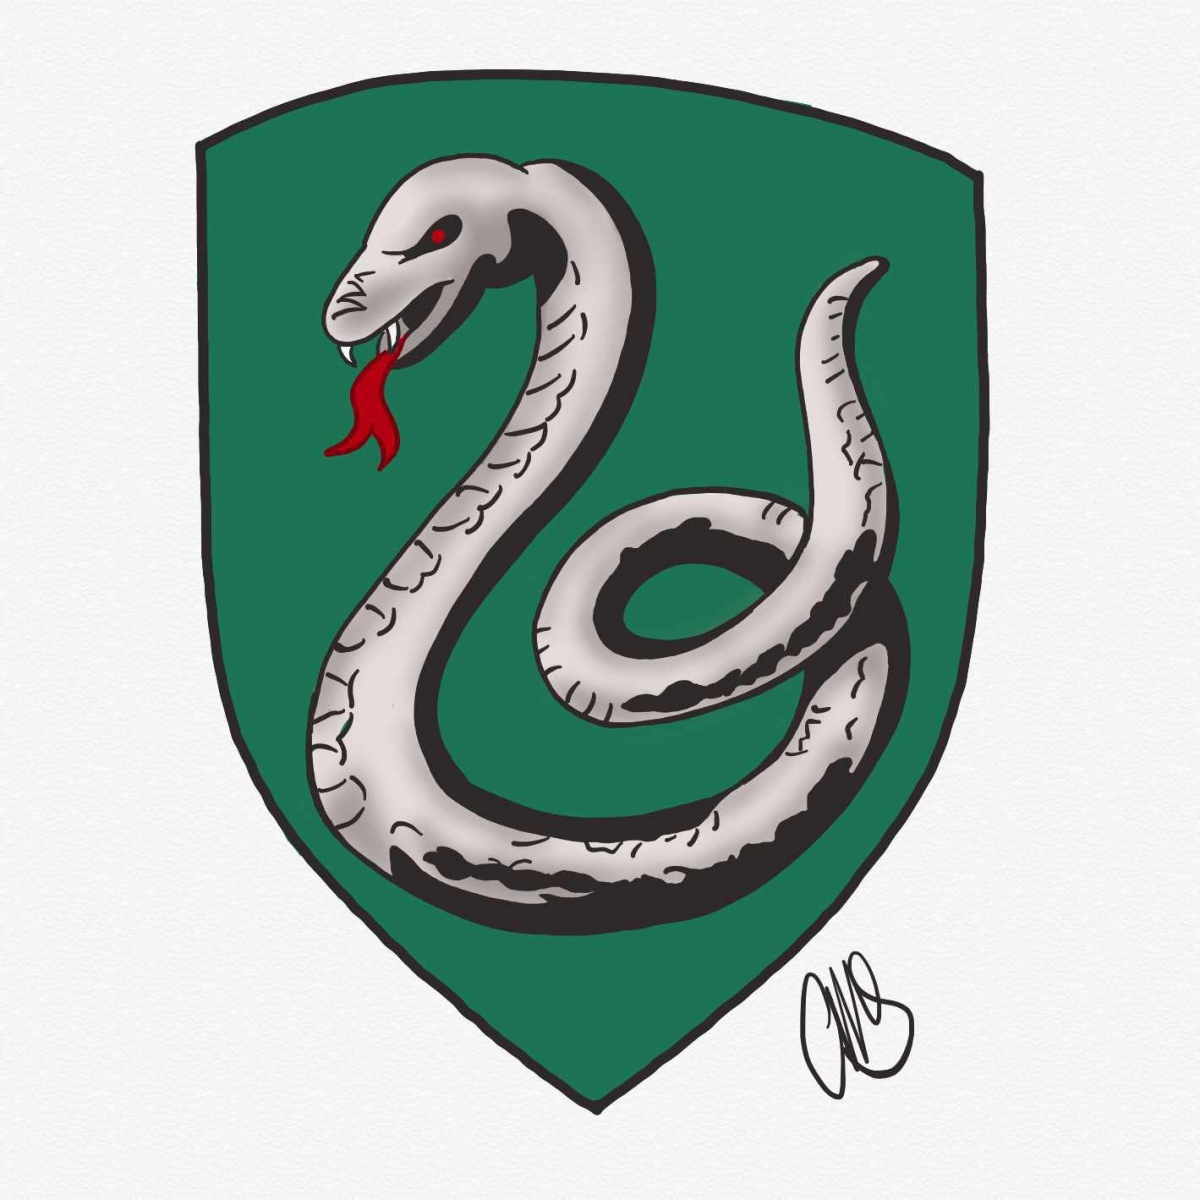 Digital drawing of a silver snake on a green crest.